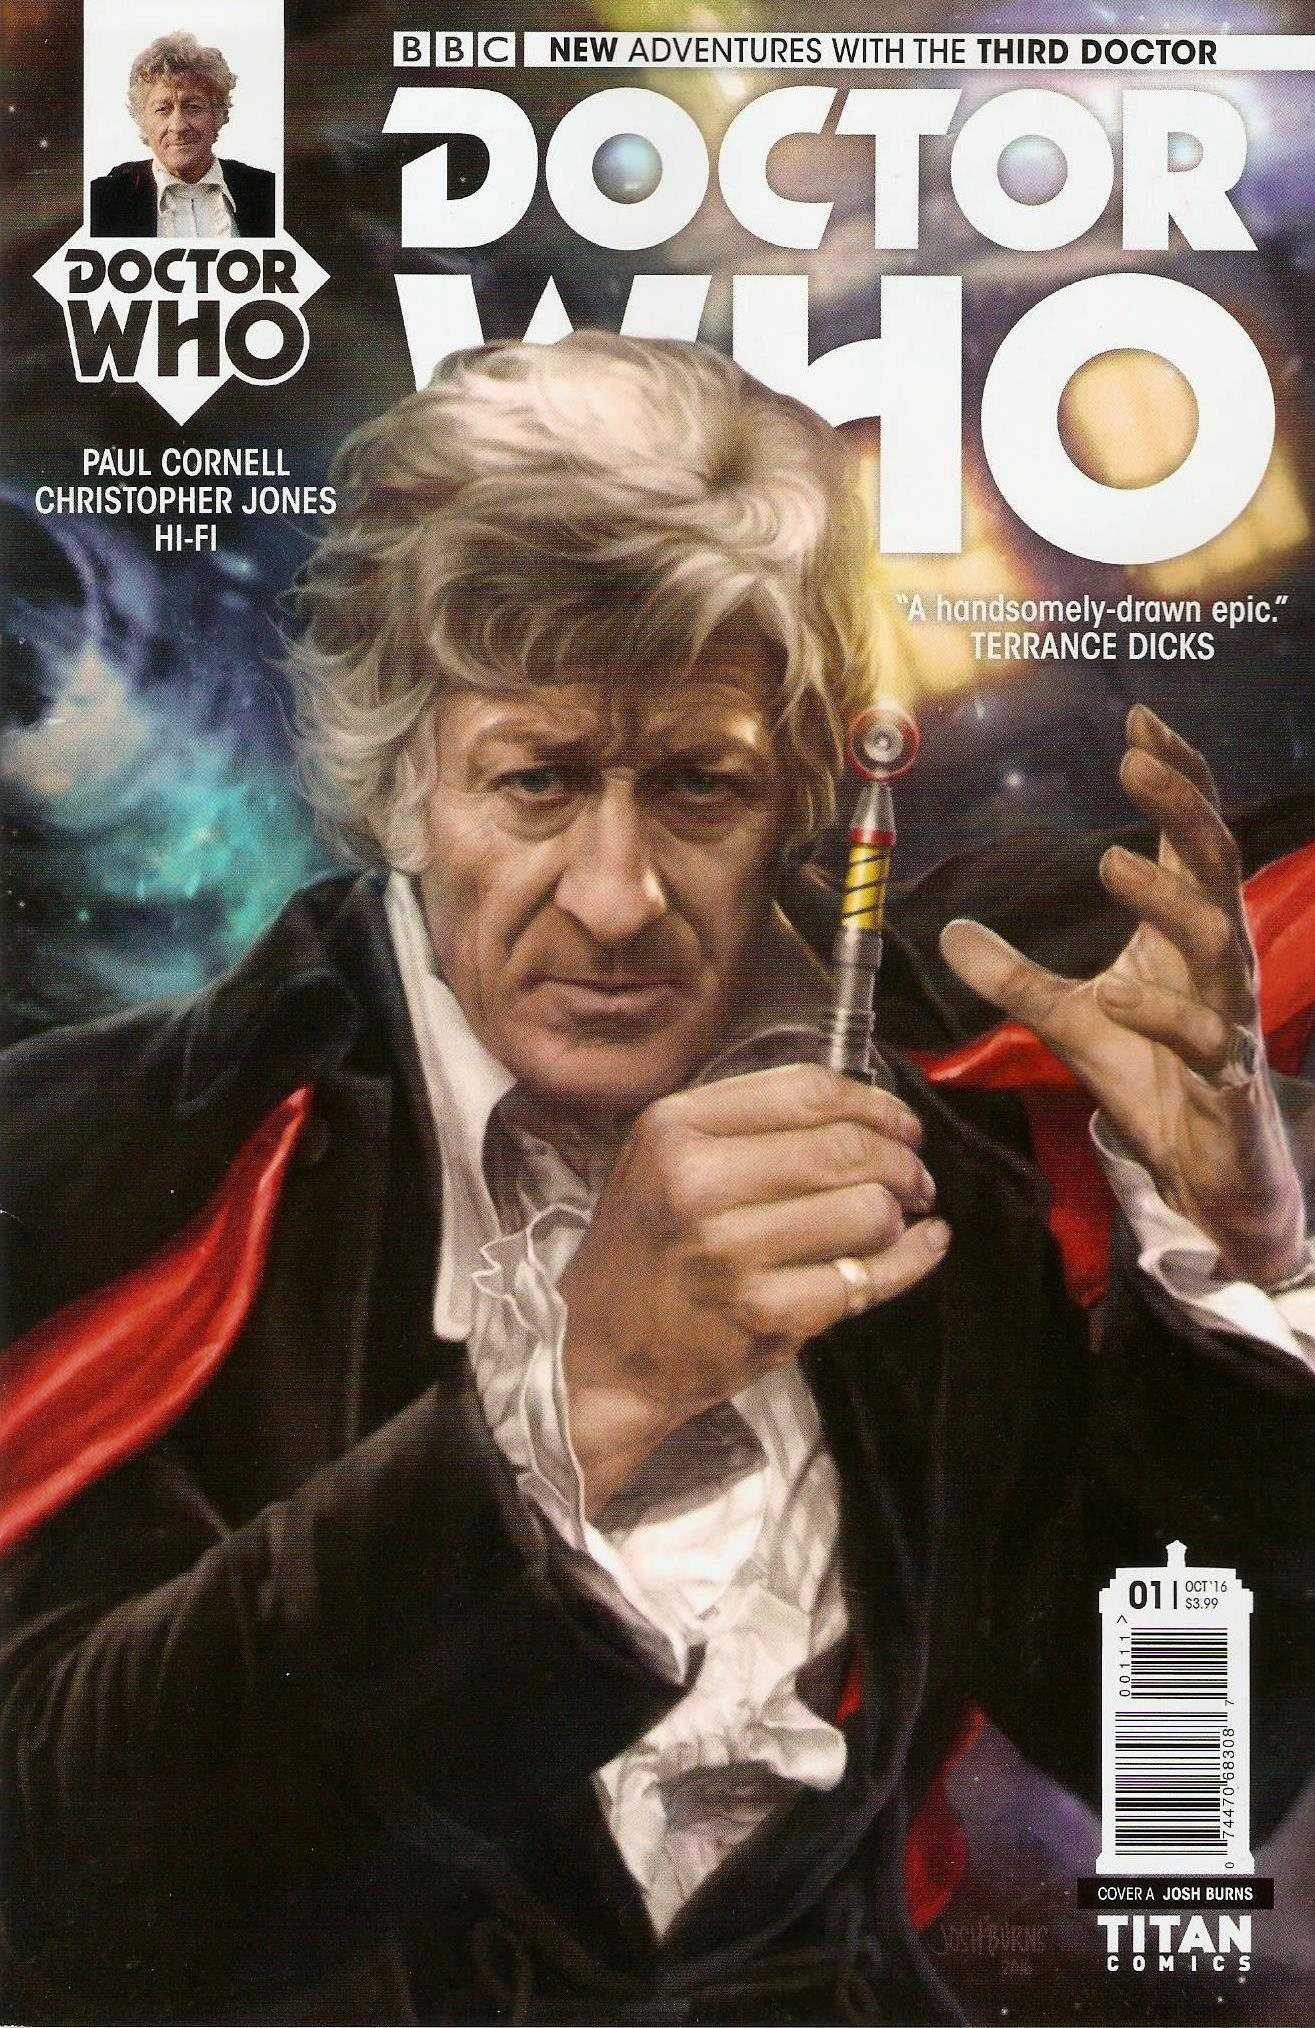 Third doctor issue 1a